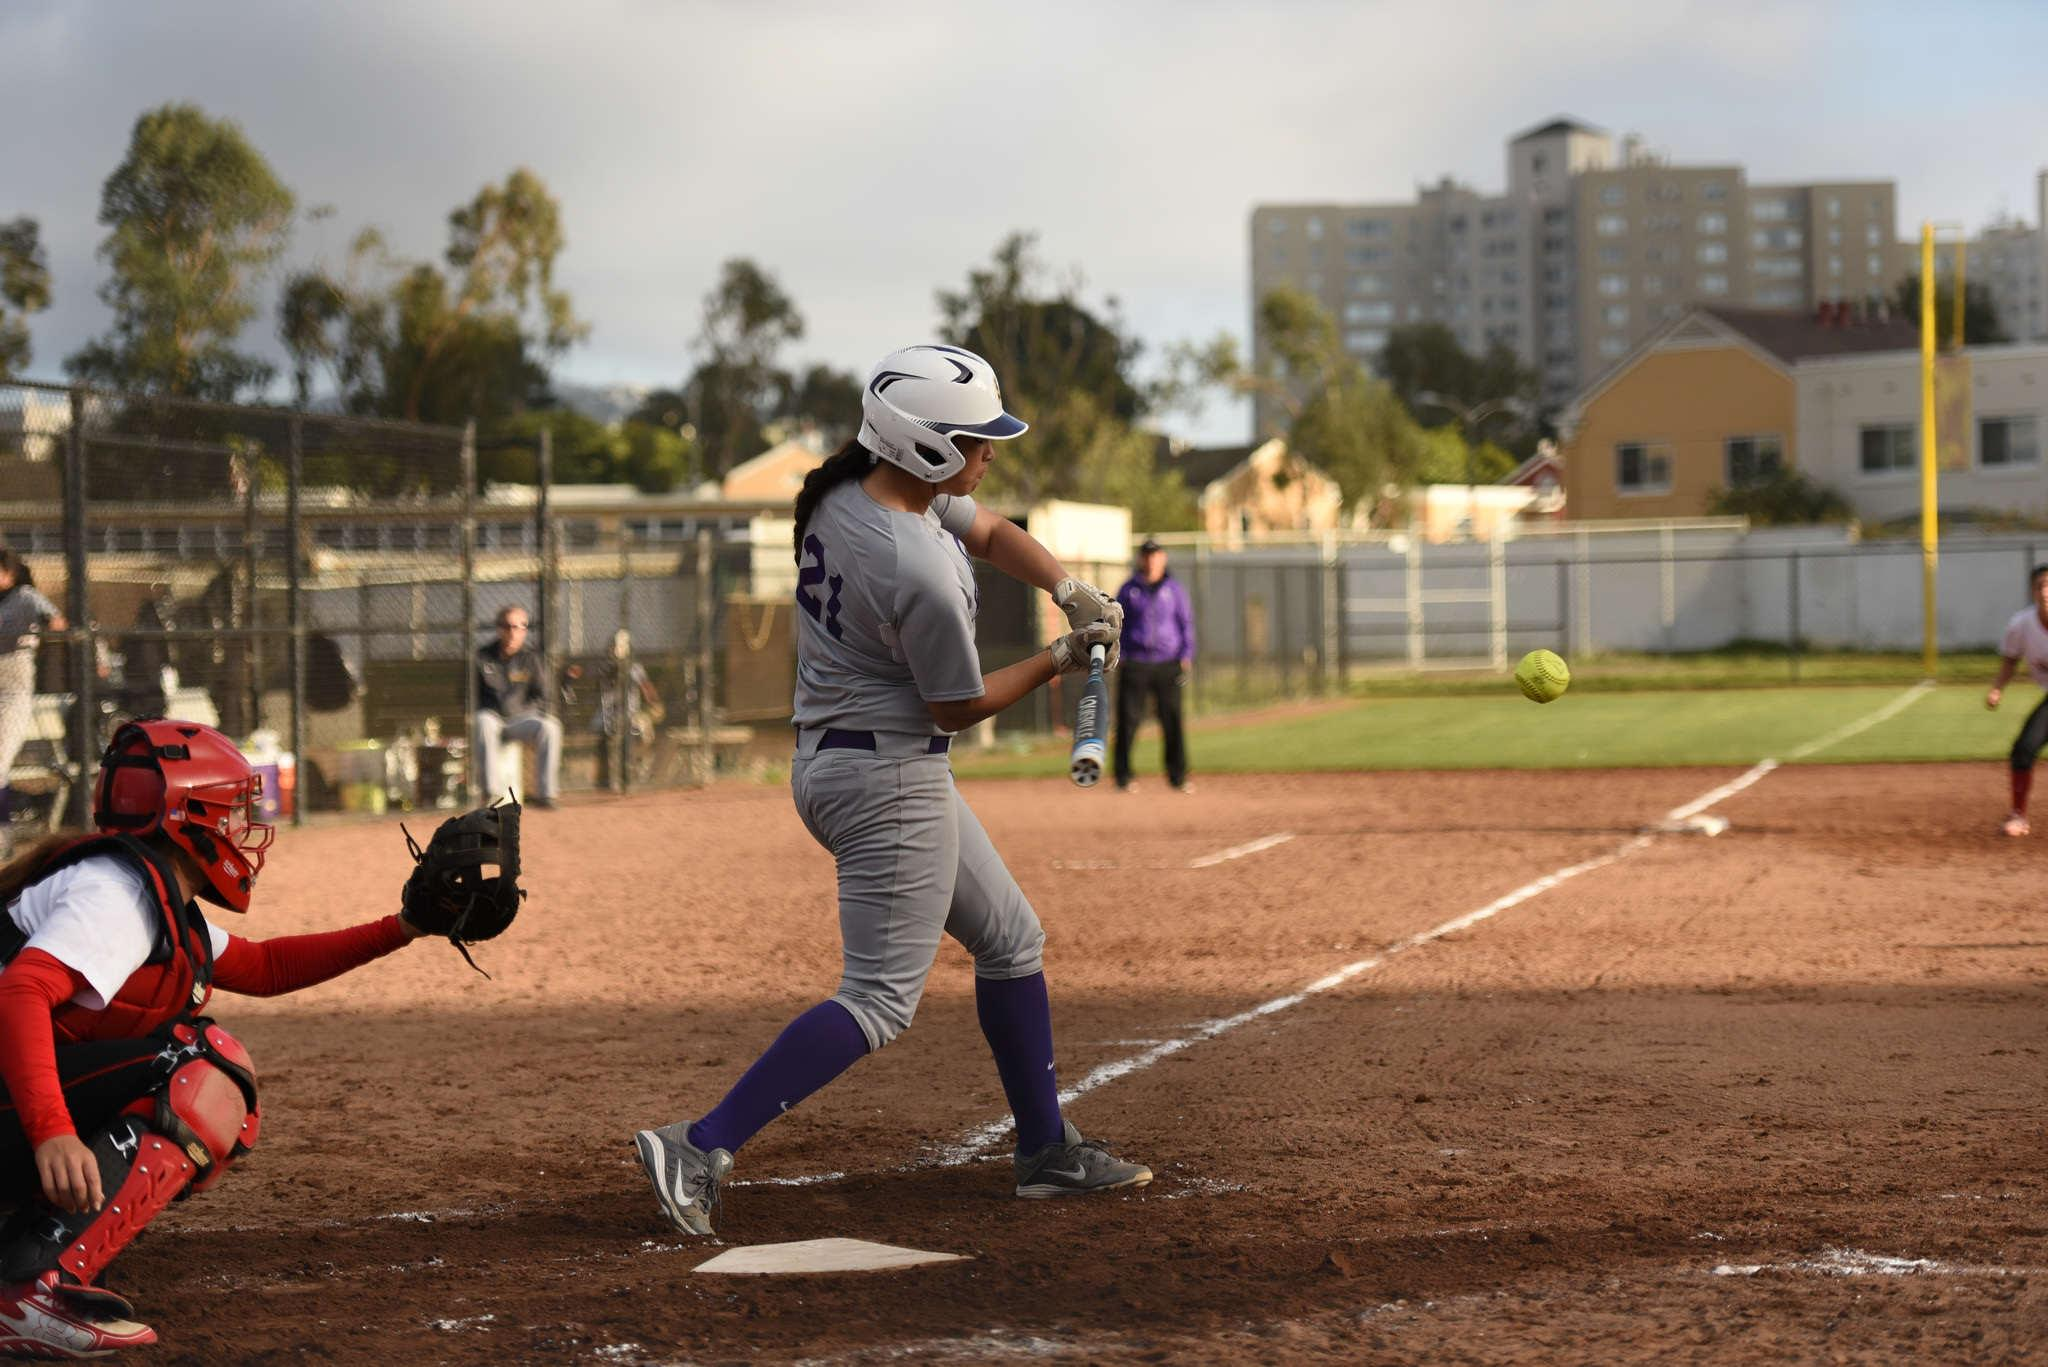 Freshman Sara Higa singles in game two of a doubleheader against The University of Hawaii at Hilo at SFSU Softball Stadium on Wednesday, Feb. 18, 2015. (David Henry / Xpress)